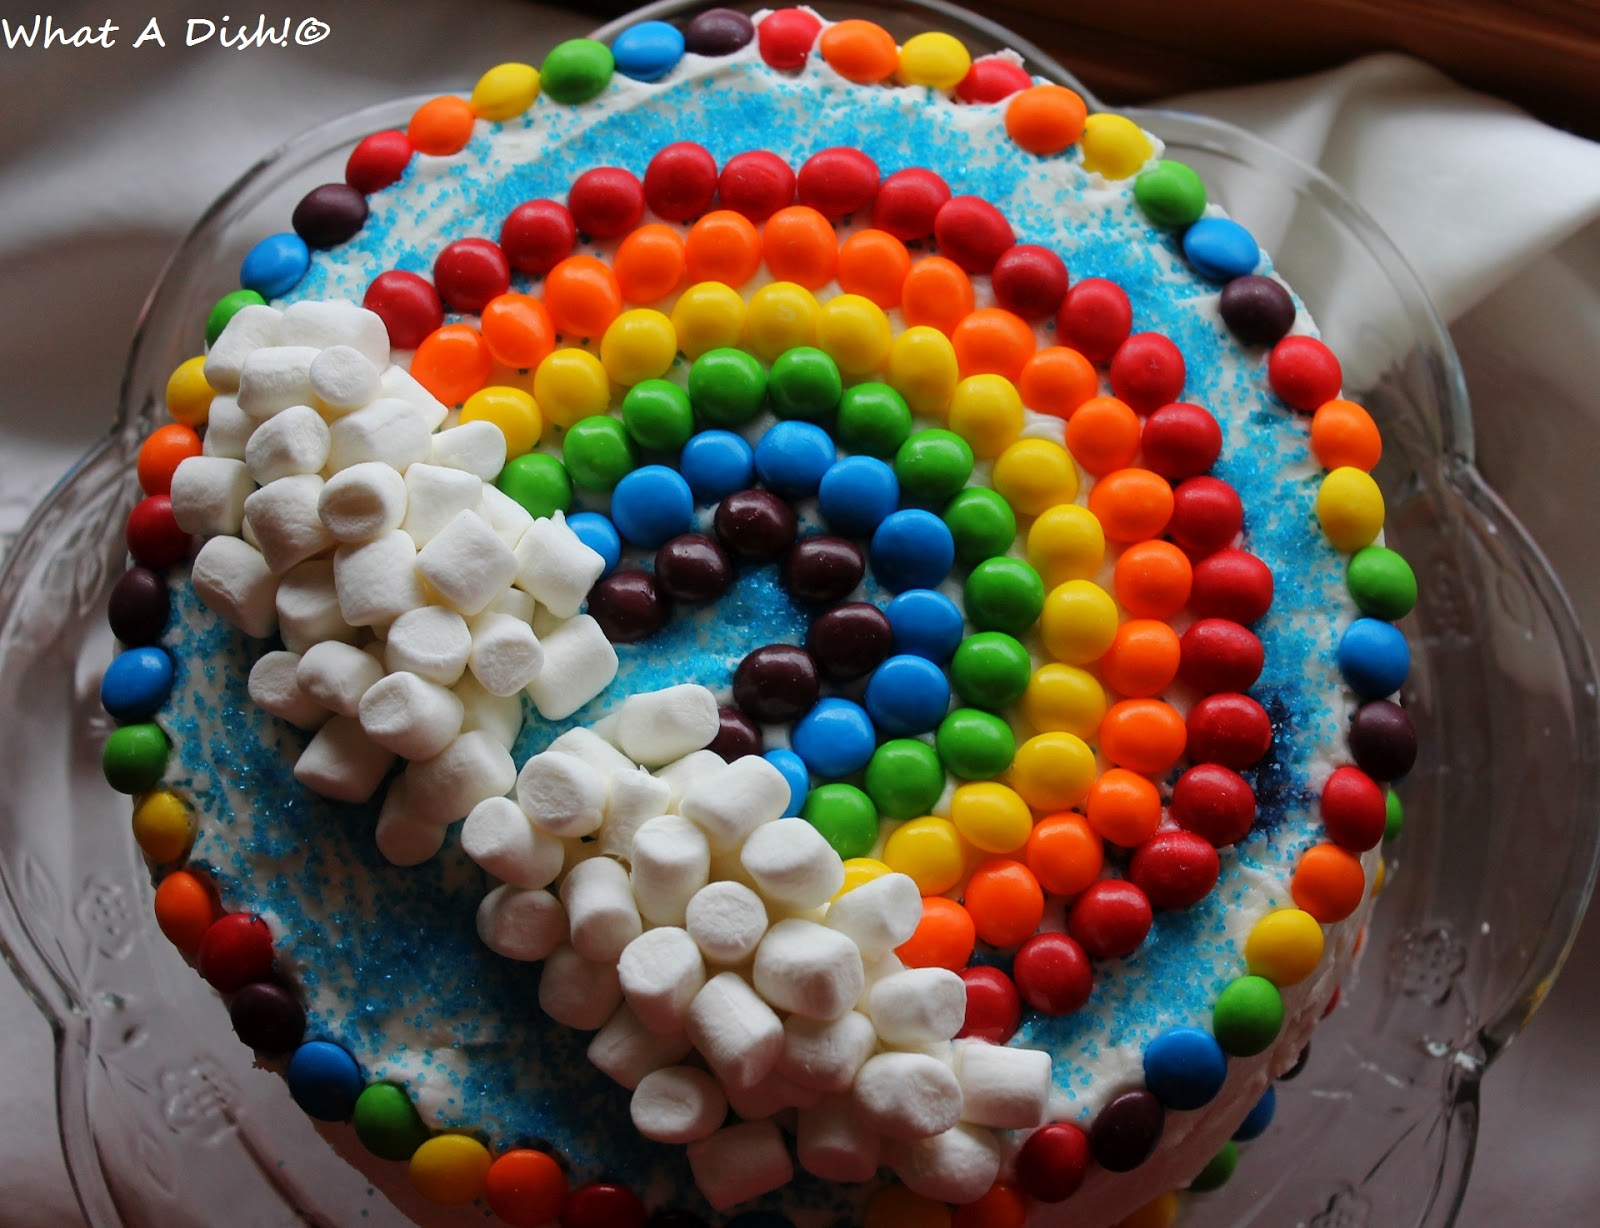 Rainbow Birthday Cake My Little Boy Just Turned 5 Years Old